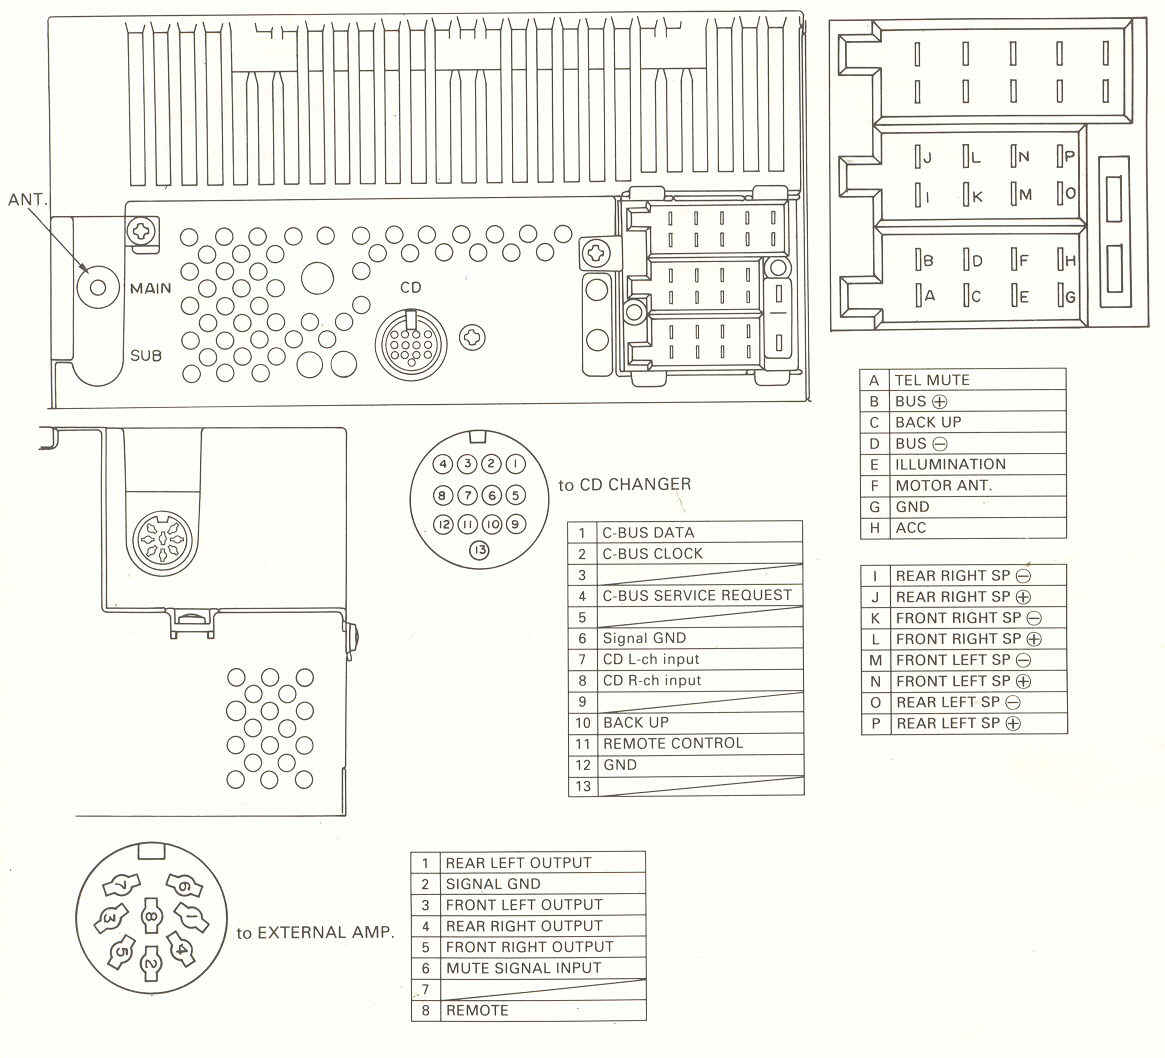 2006 saab 9 3 fuse diagram. Black Bedroom Furniture Sets. Home Design Ideas